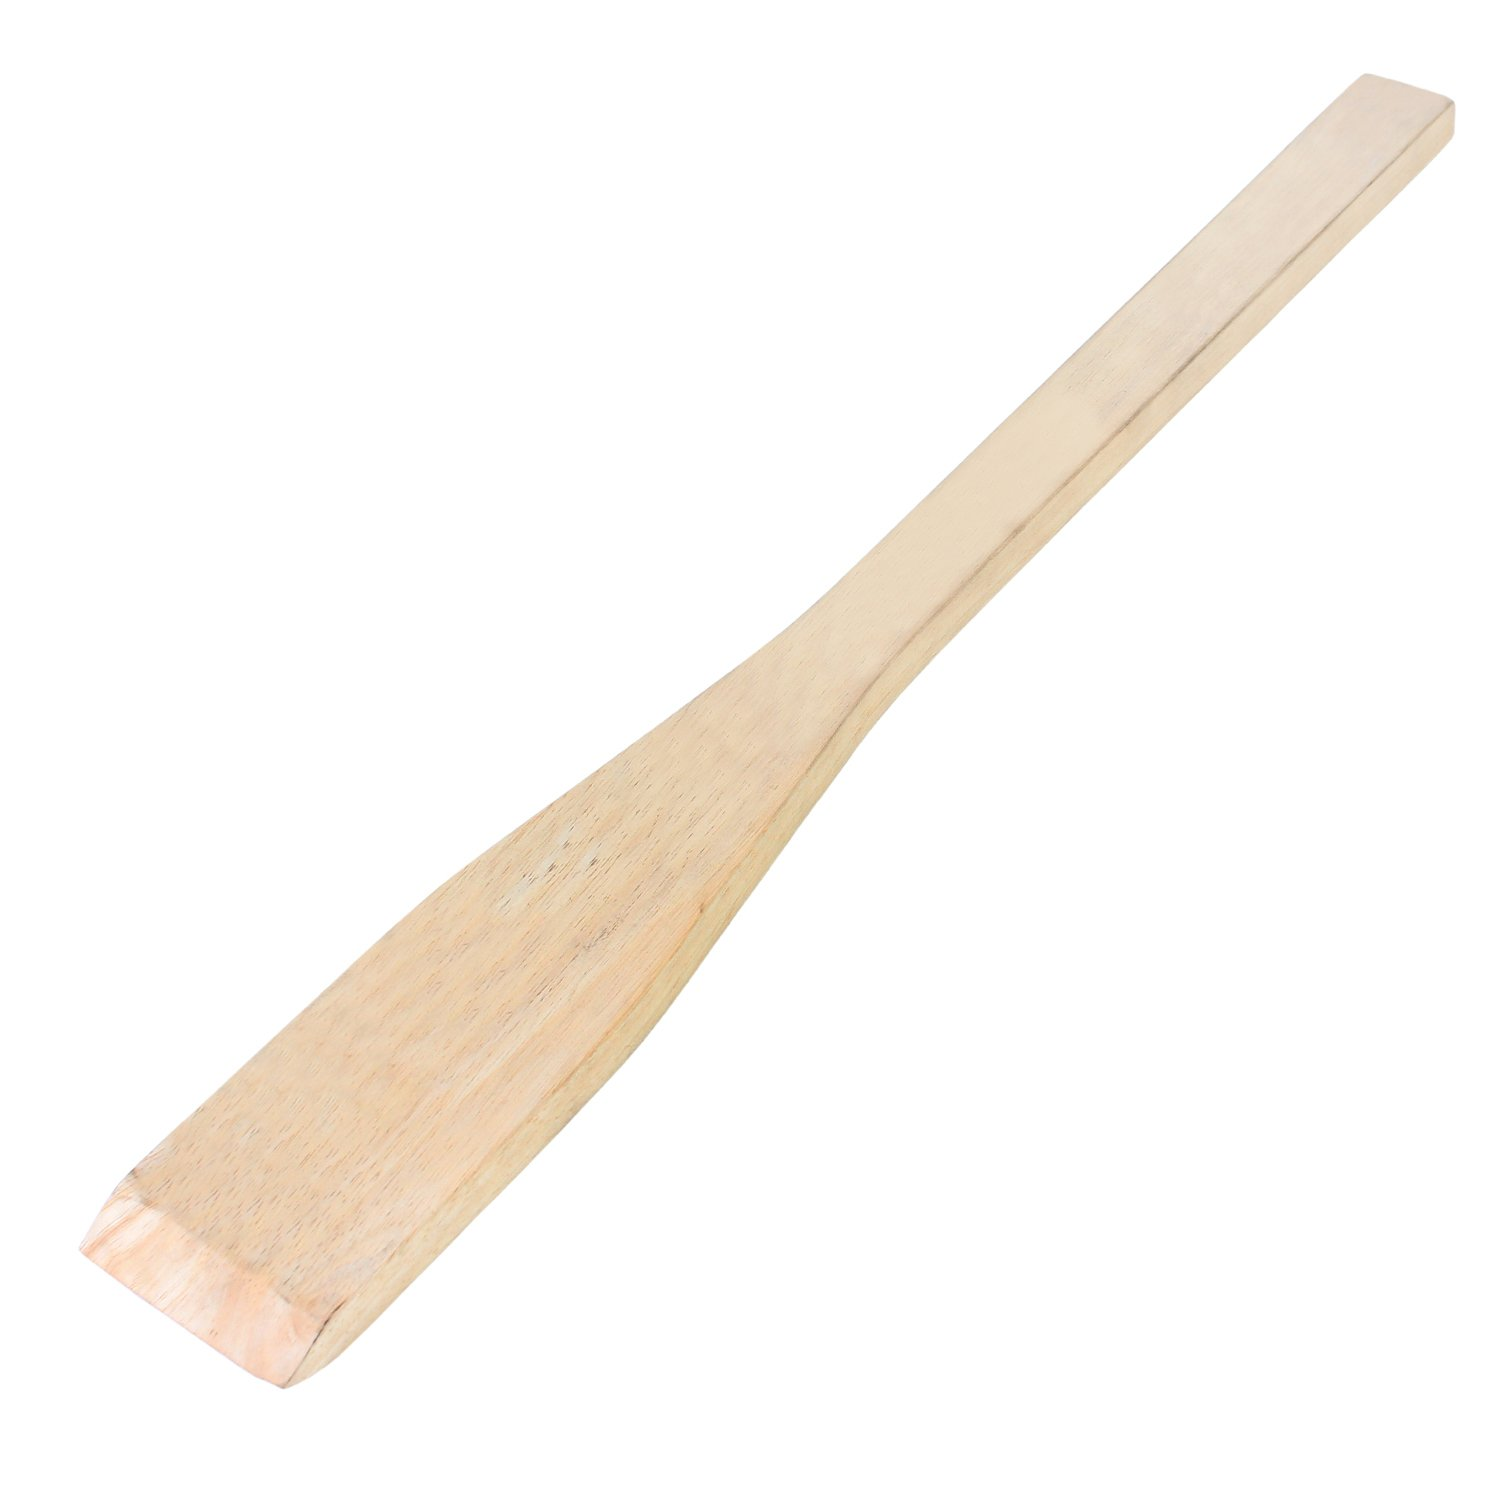 Excellante 24-Inch Wood Mixing Paddles